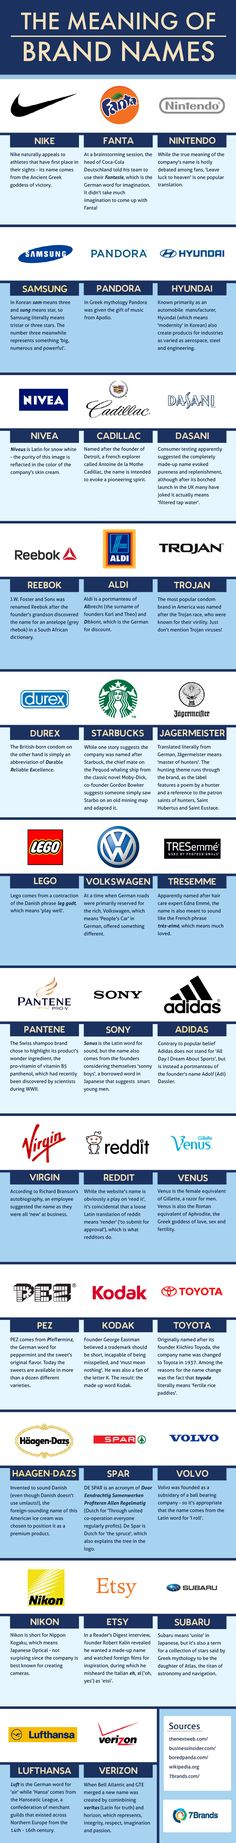 The Meaning of Brand Names #infographic #Business #Branding #Logo